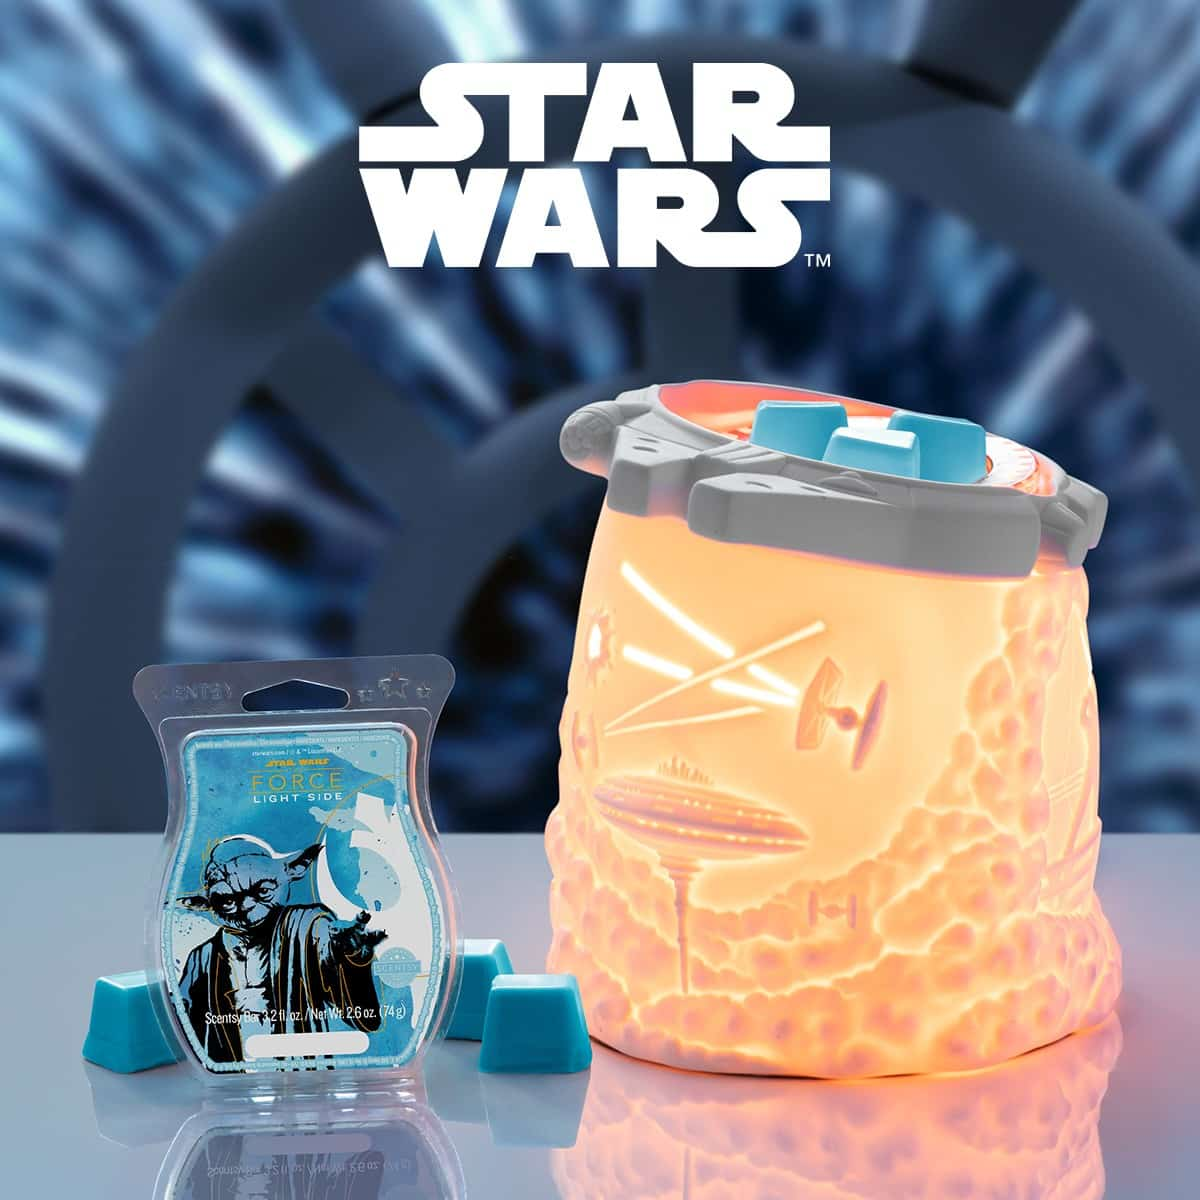 Star Wars™ - Scentsy Collection | R2-D2 Scentsy Warmer | Shop Now